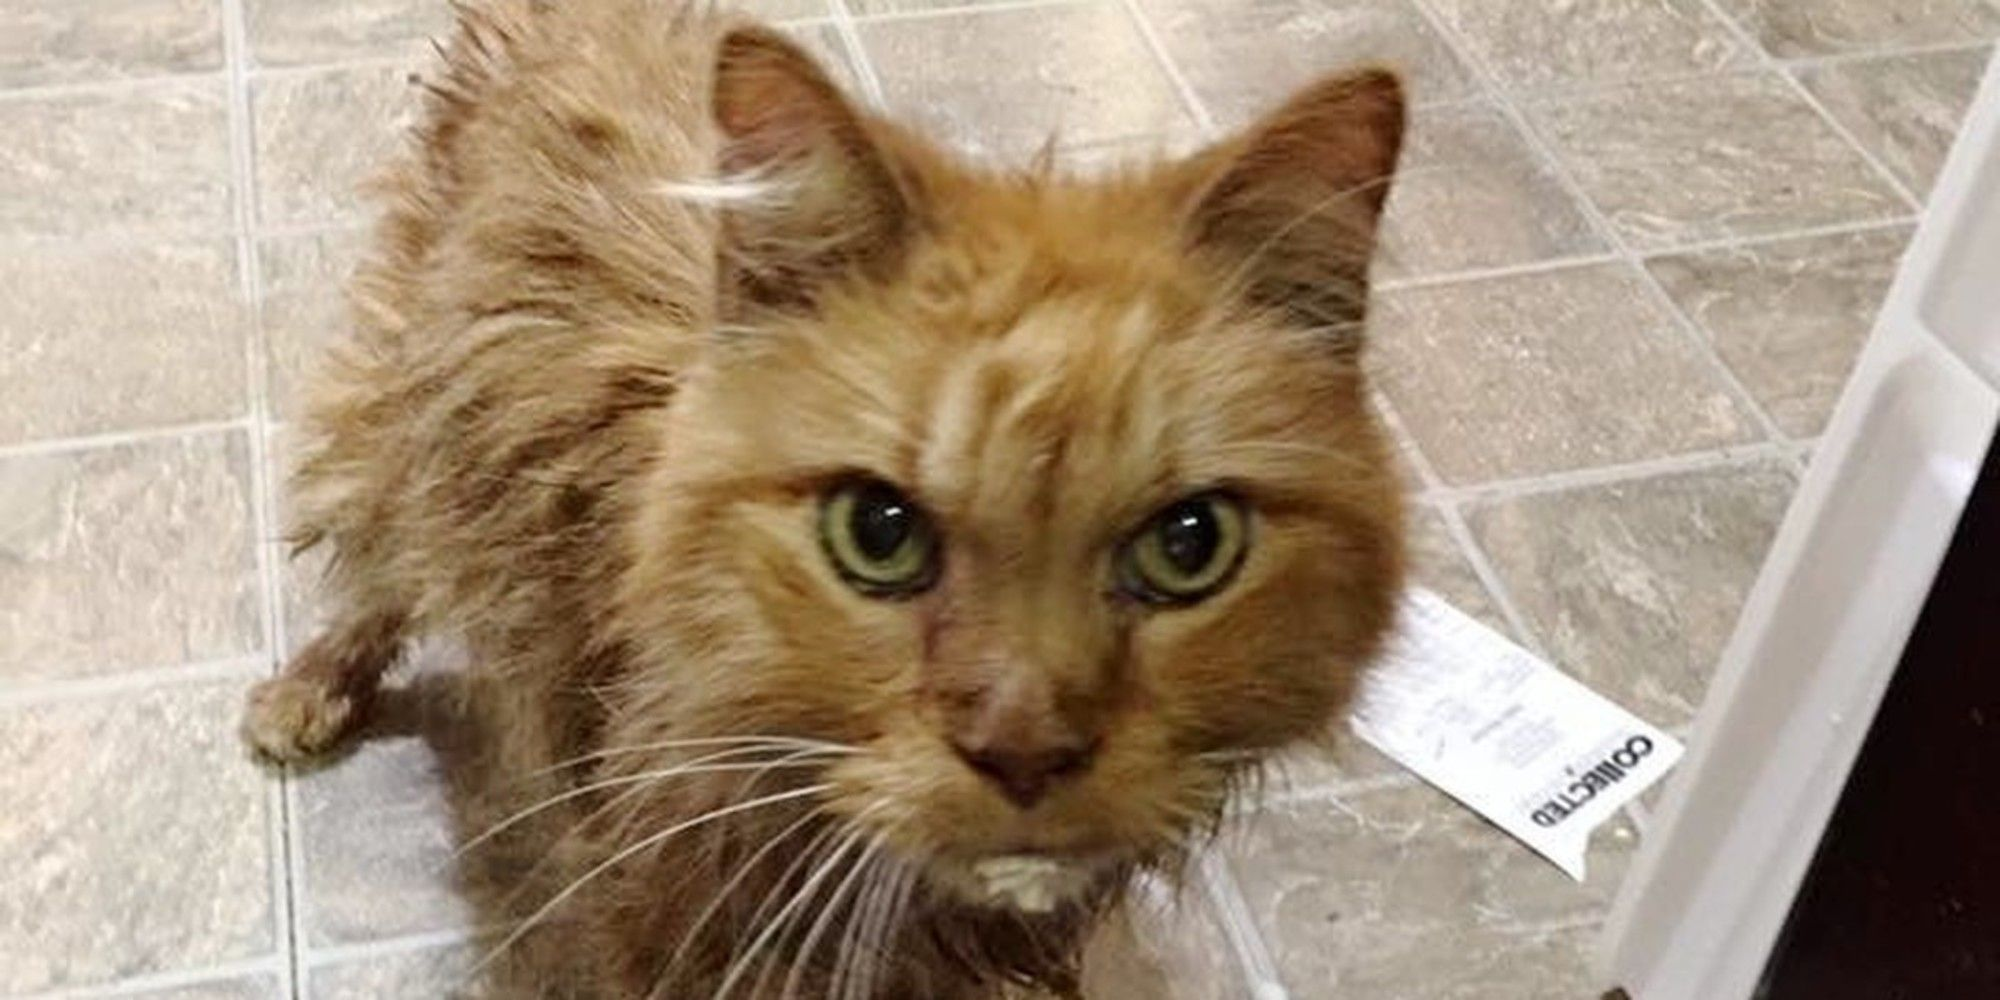 20 Year Old Cat is So Happy to Be Given a Home, He Can't